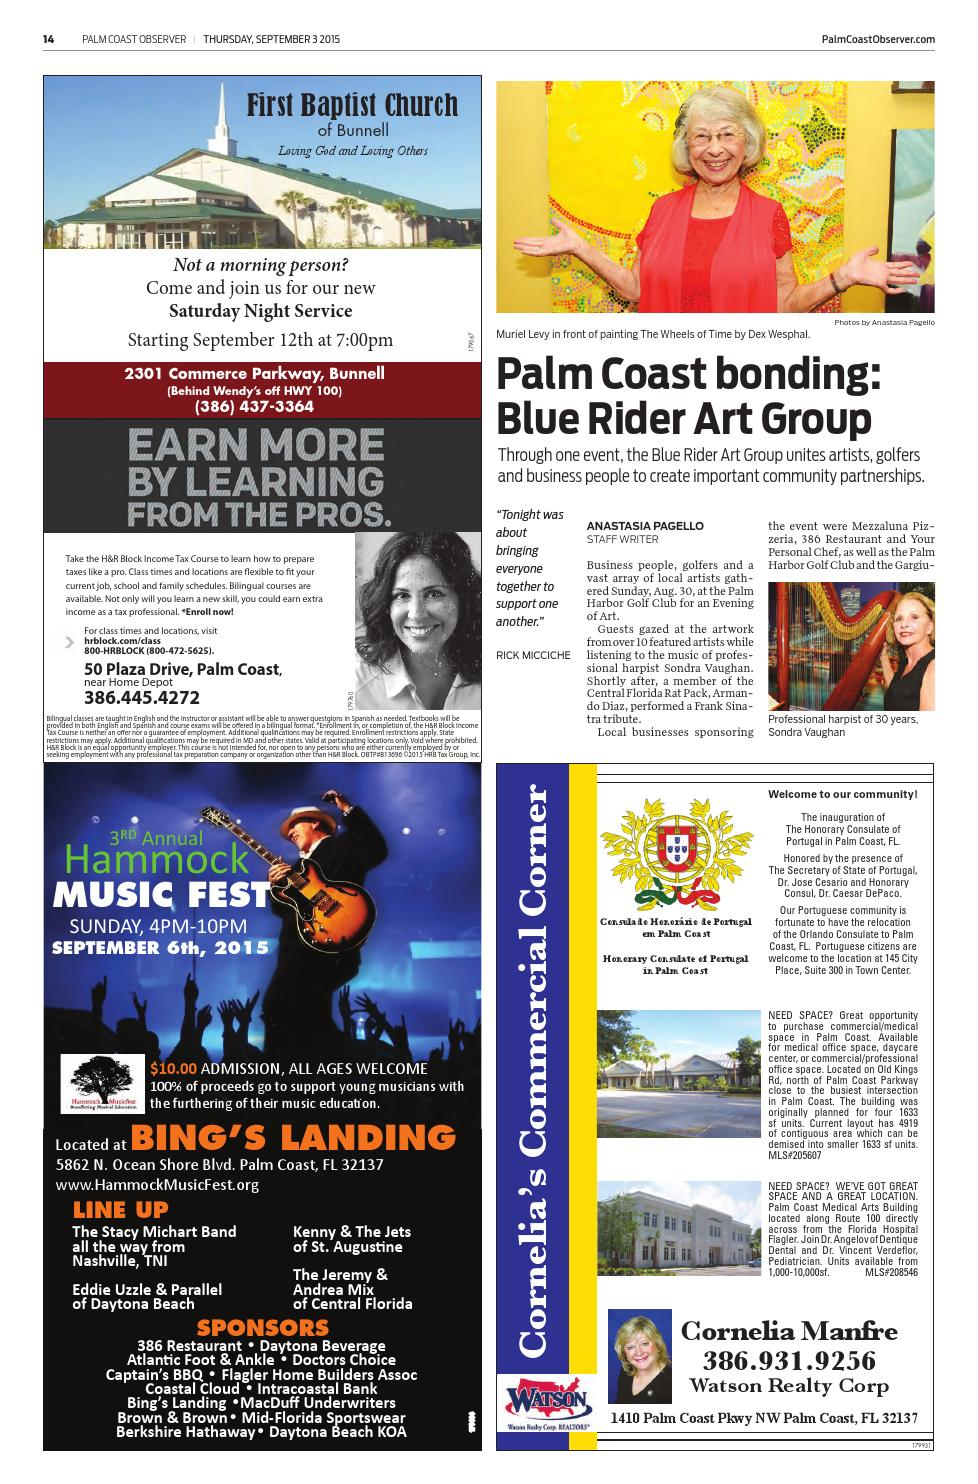 Palm Coast Observer Online 09-03-15 by Brian McMillan - issuu